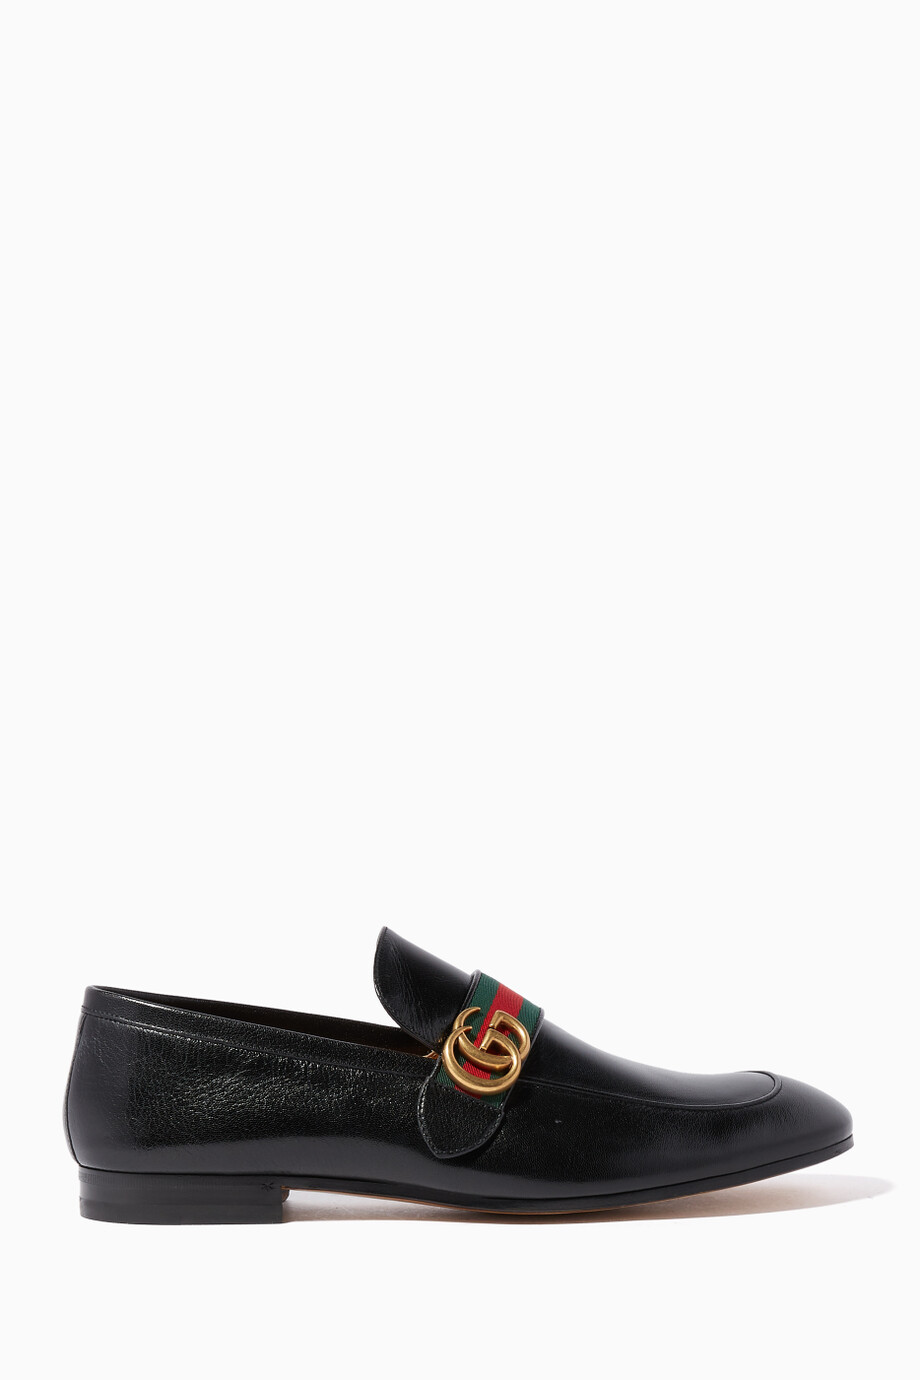 79258e263a24e Shop Gucci Black Black Donnie GG Leather Loafers for Men   Ounass Kuwait